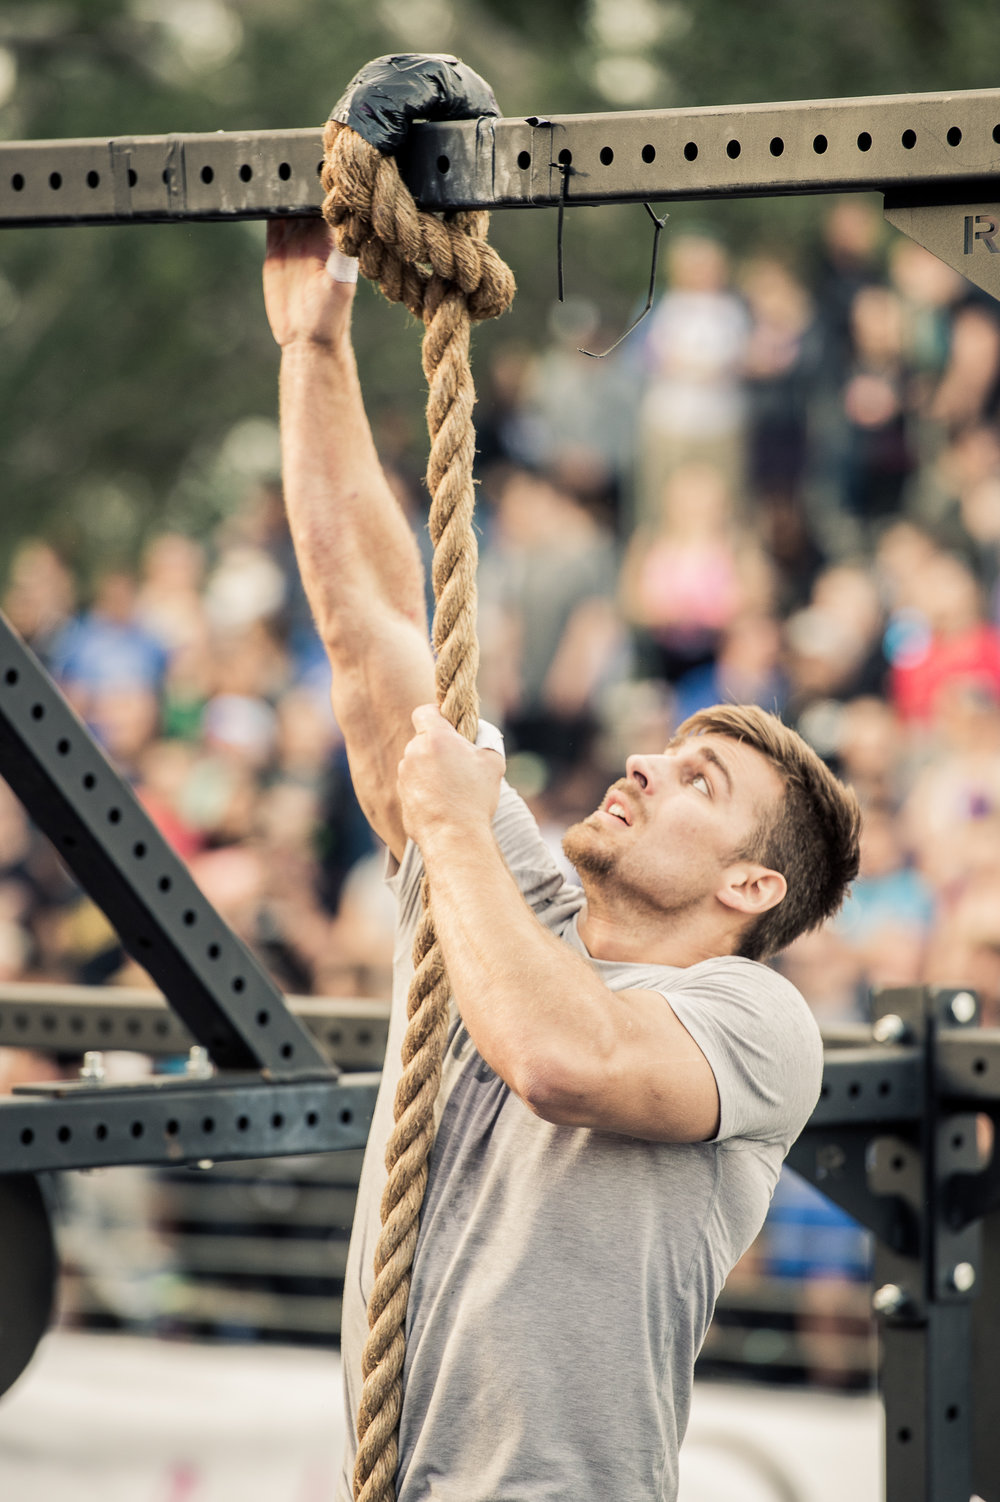 2018 Wodapalooza - Day 3, Photo Alessio Neri-001-45.jpg